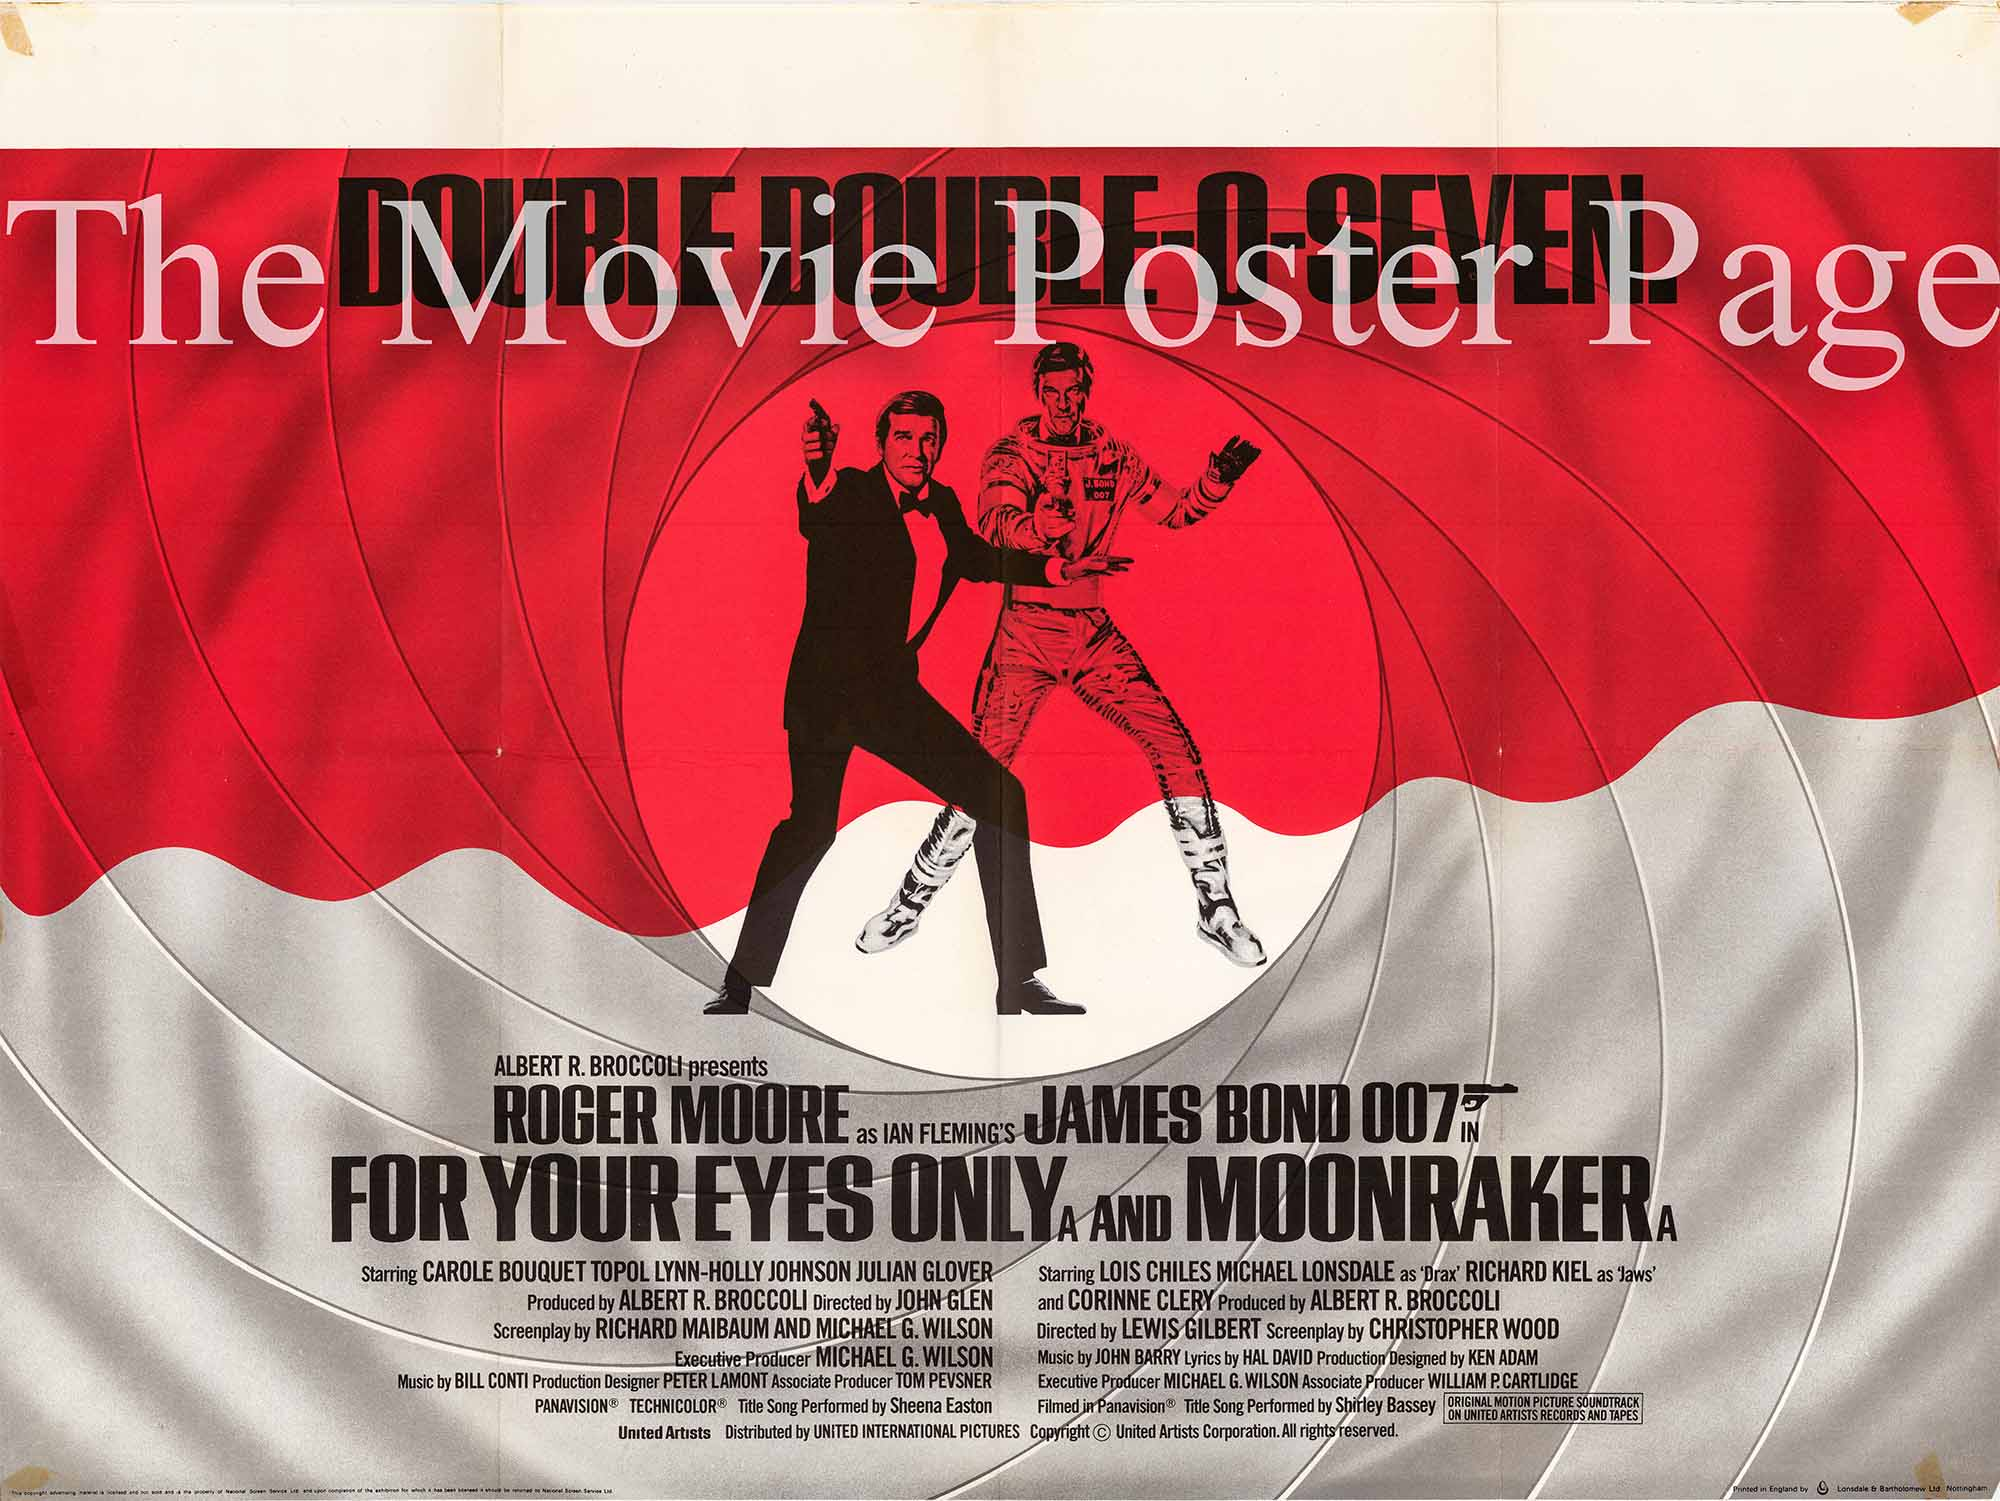 Pictured is a UK quad combo poster for the films Moonraker and For Your Eyes Only starring Roger Moore.